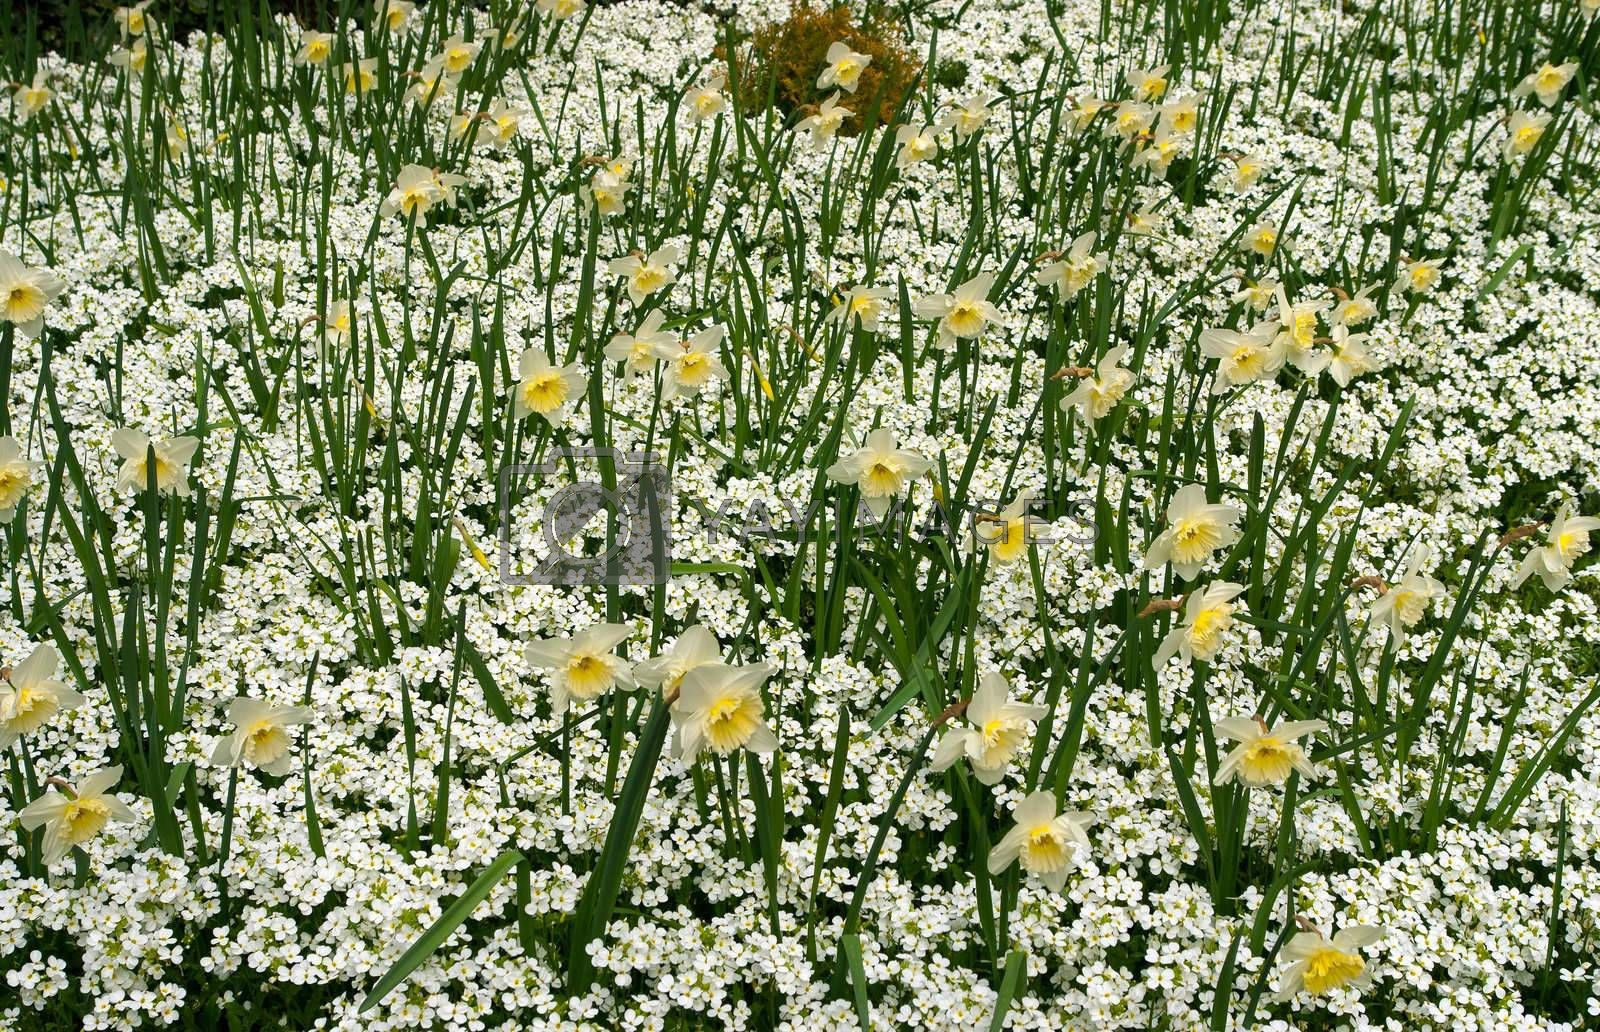 The blooming narcissus on a flower carpet